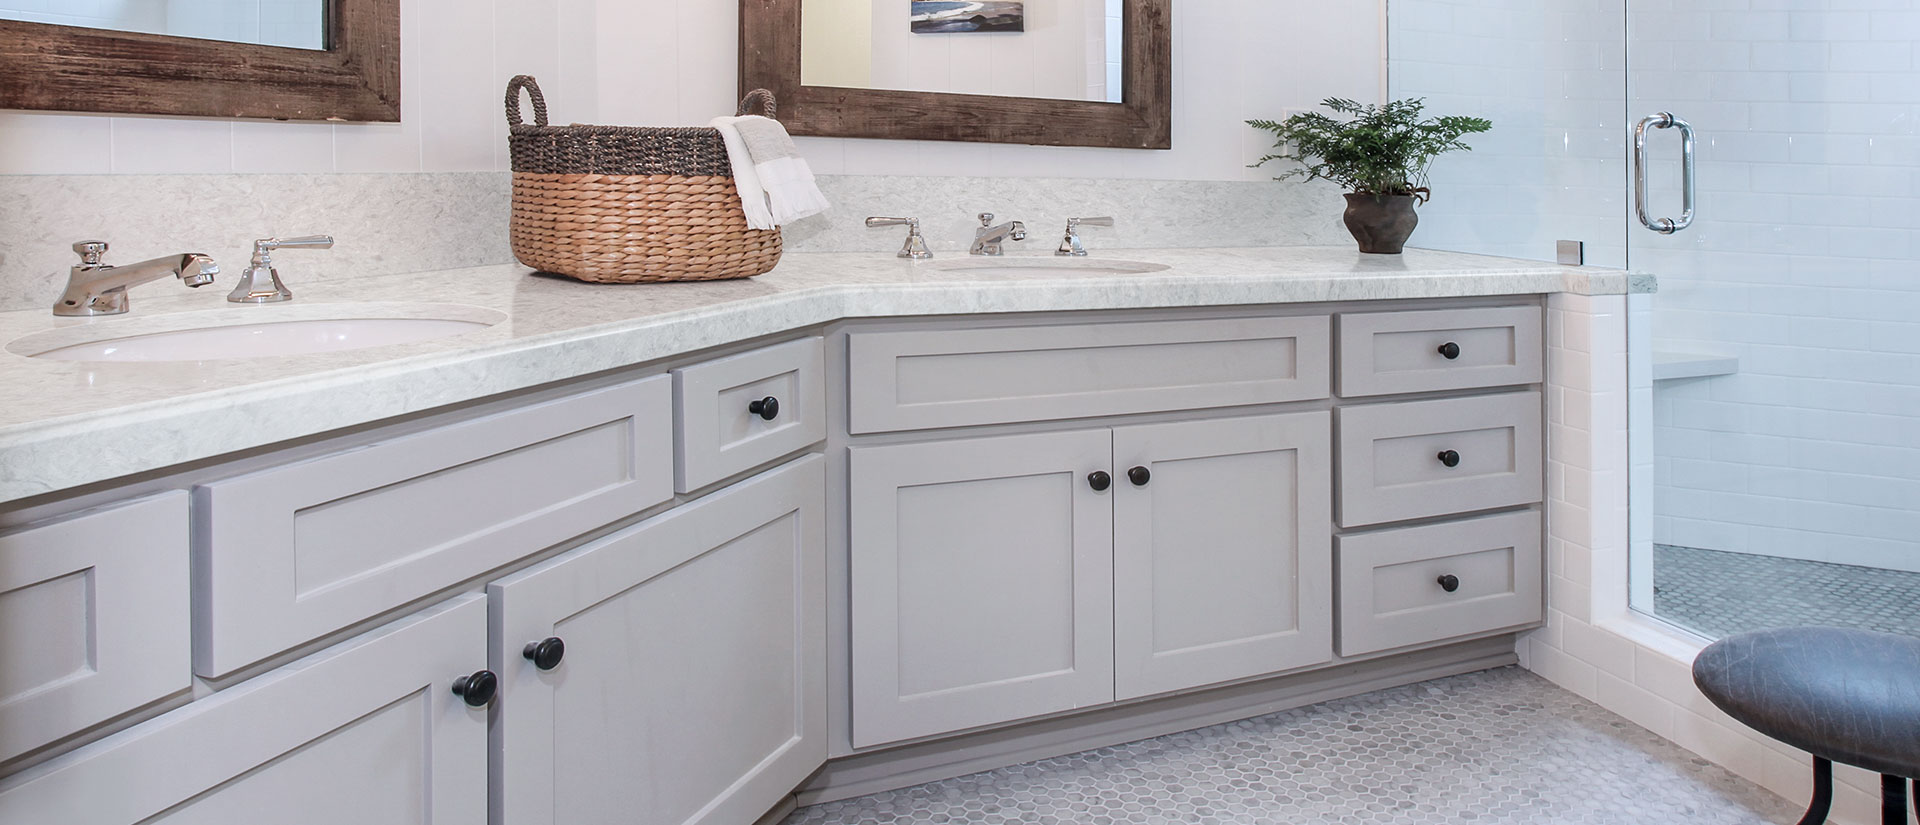 Rolling Fog Grey Quartz Countertops